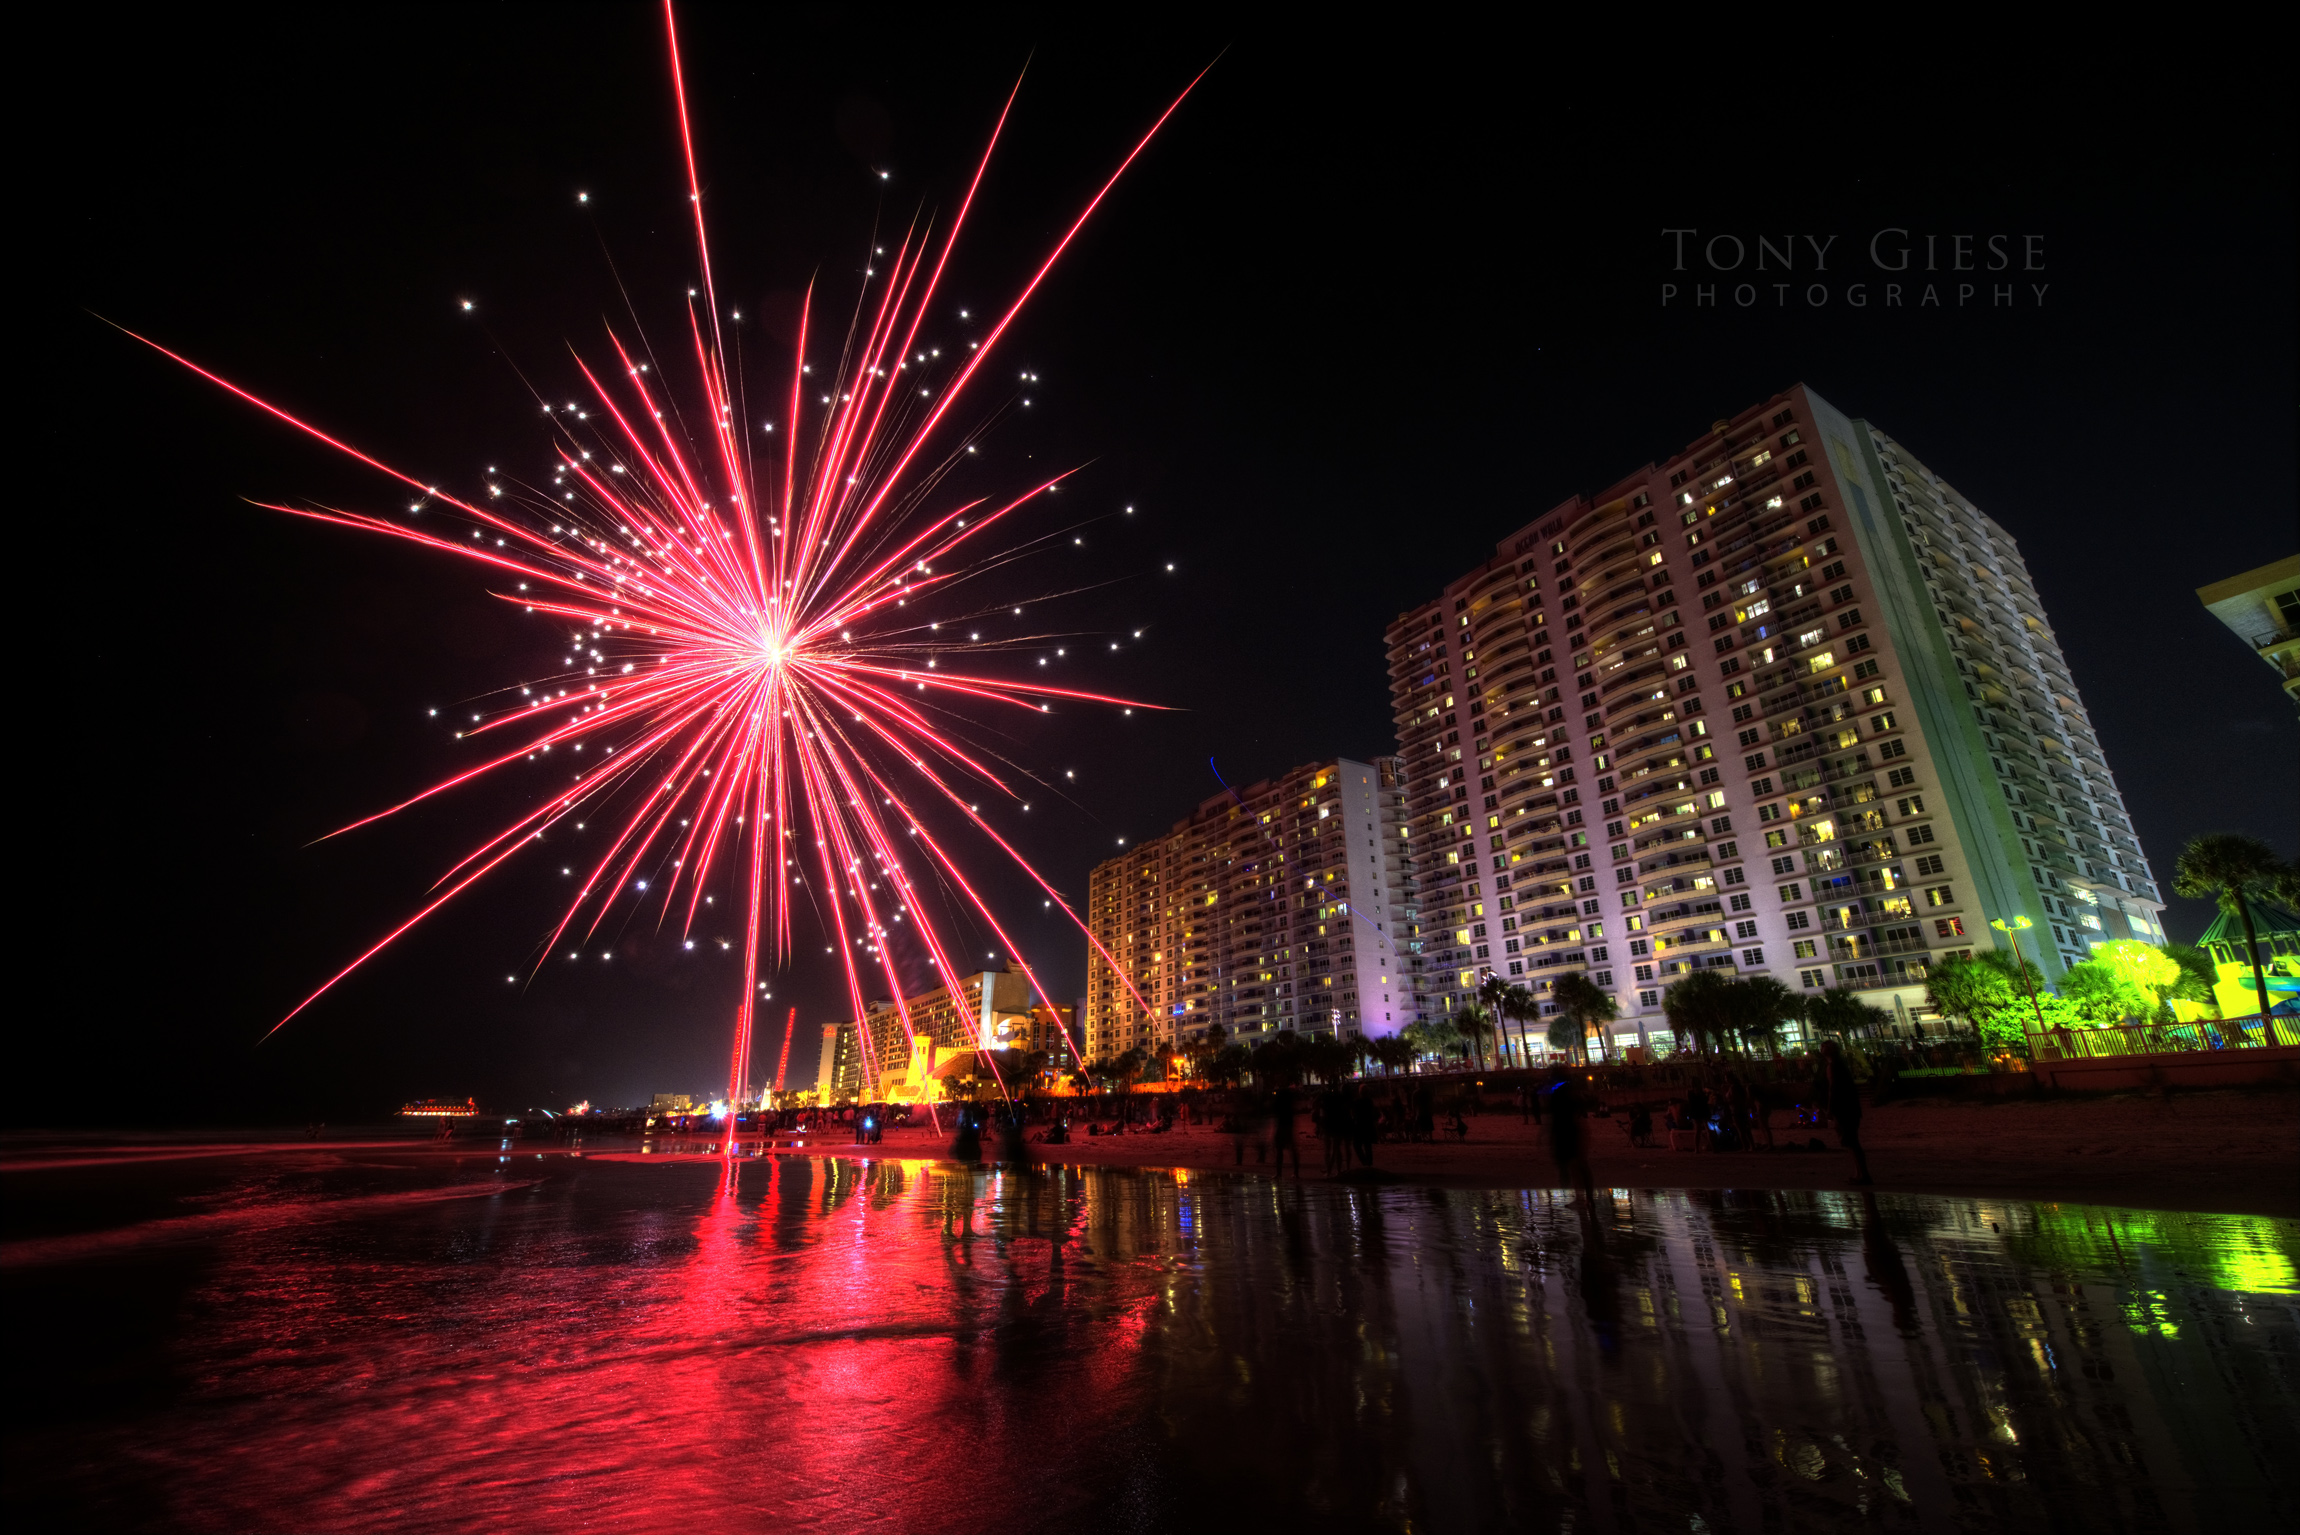 Fireworks on Daytona Beach in front of Wyndham Ocean Walk resort.